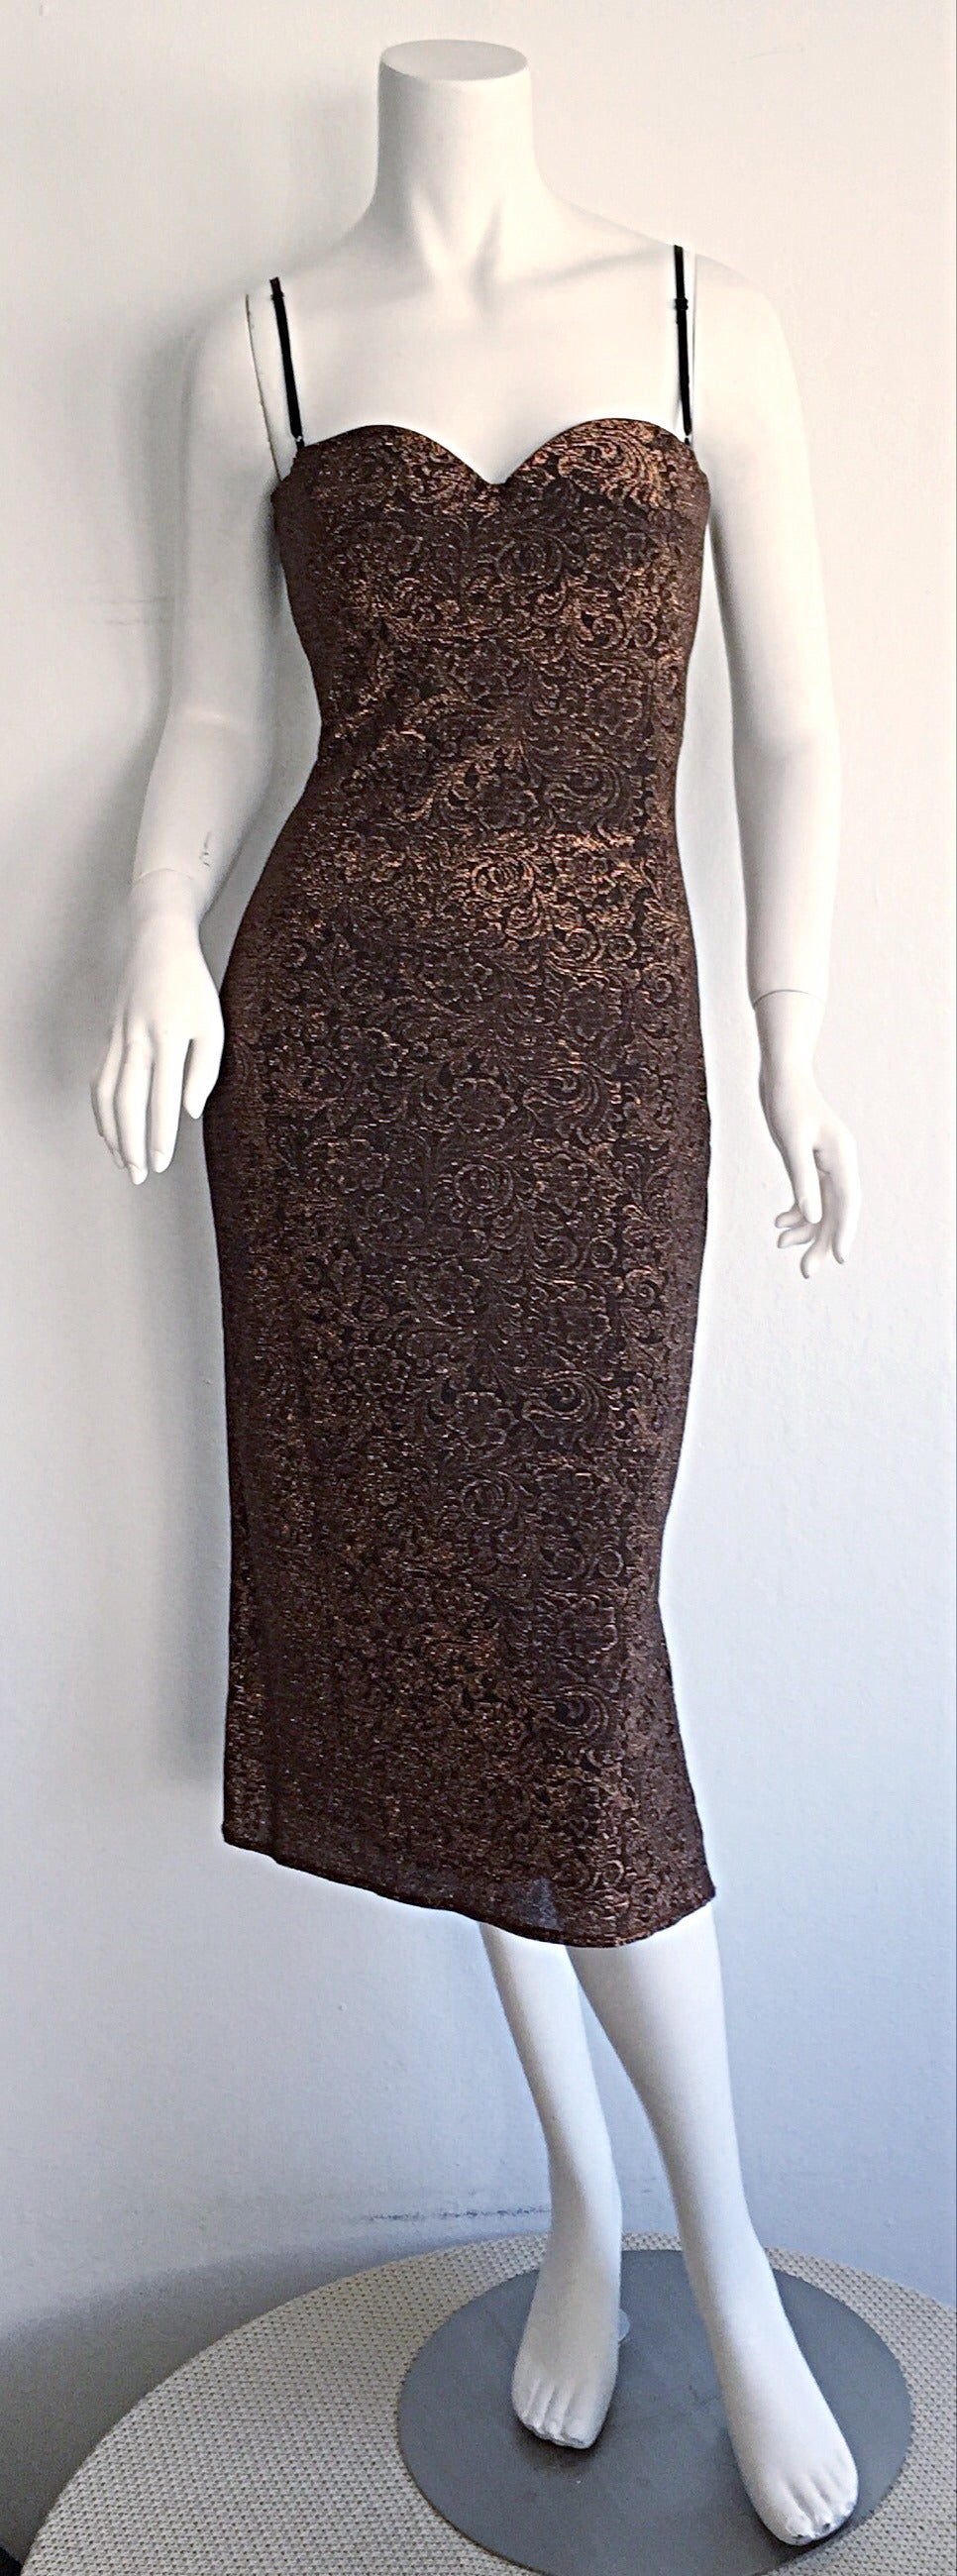 Beautiful Vintage Casadei Bronze Intricate Metallic Dress w/ Convertible Straps In Excellent Condition For Sale In San Francisco, CA